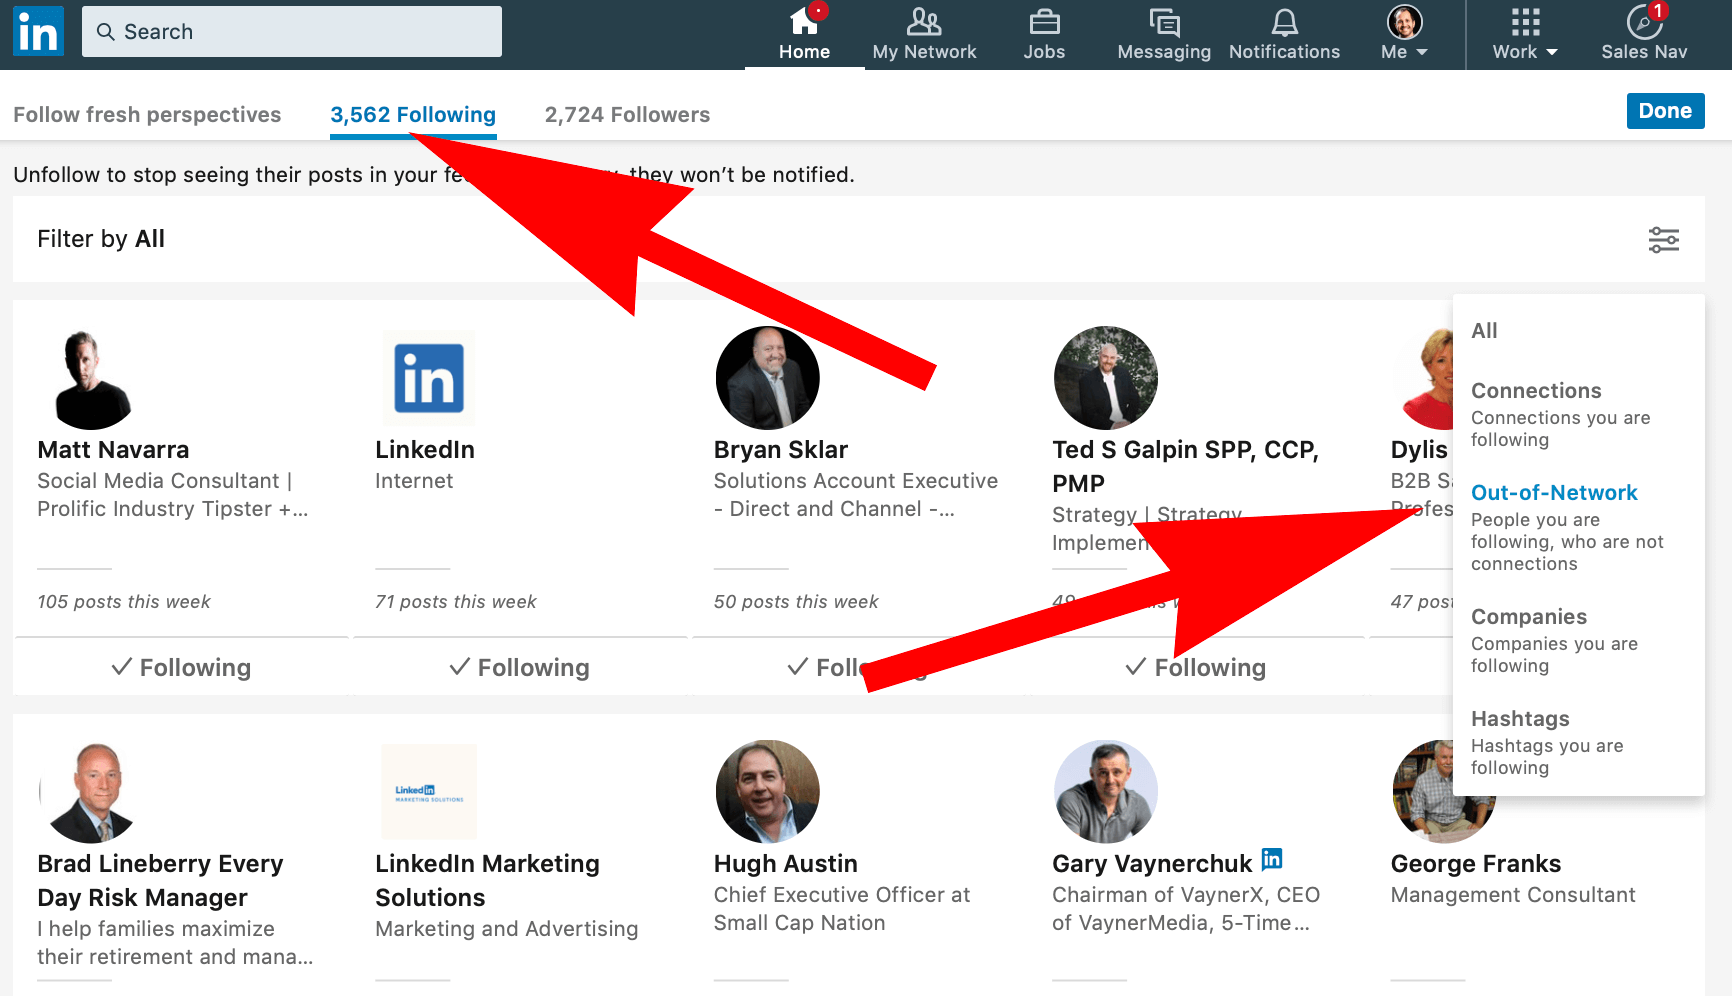 How do I find people I follow on Linkedin but not connected to?